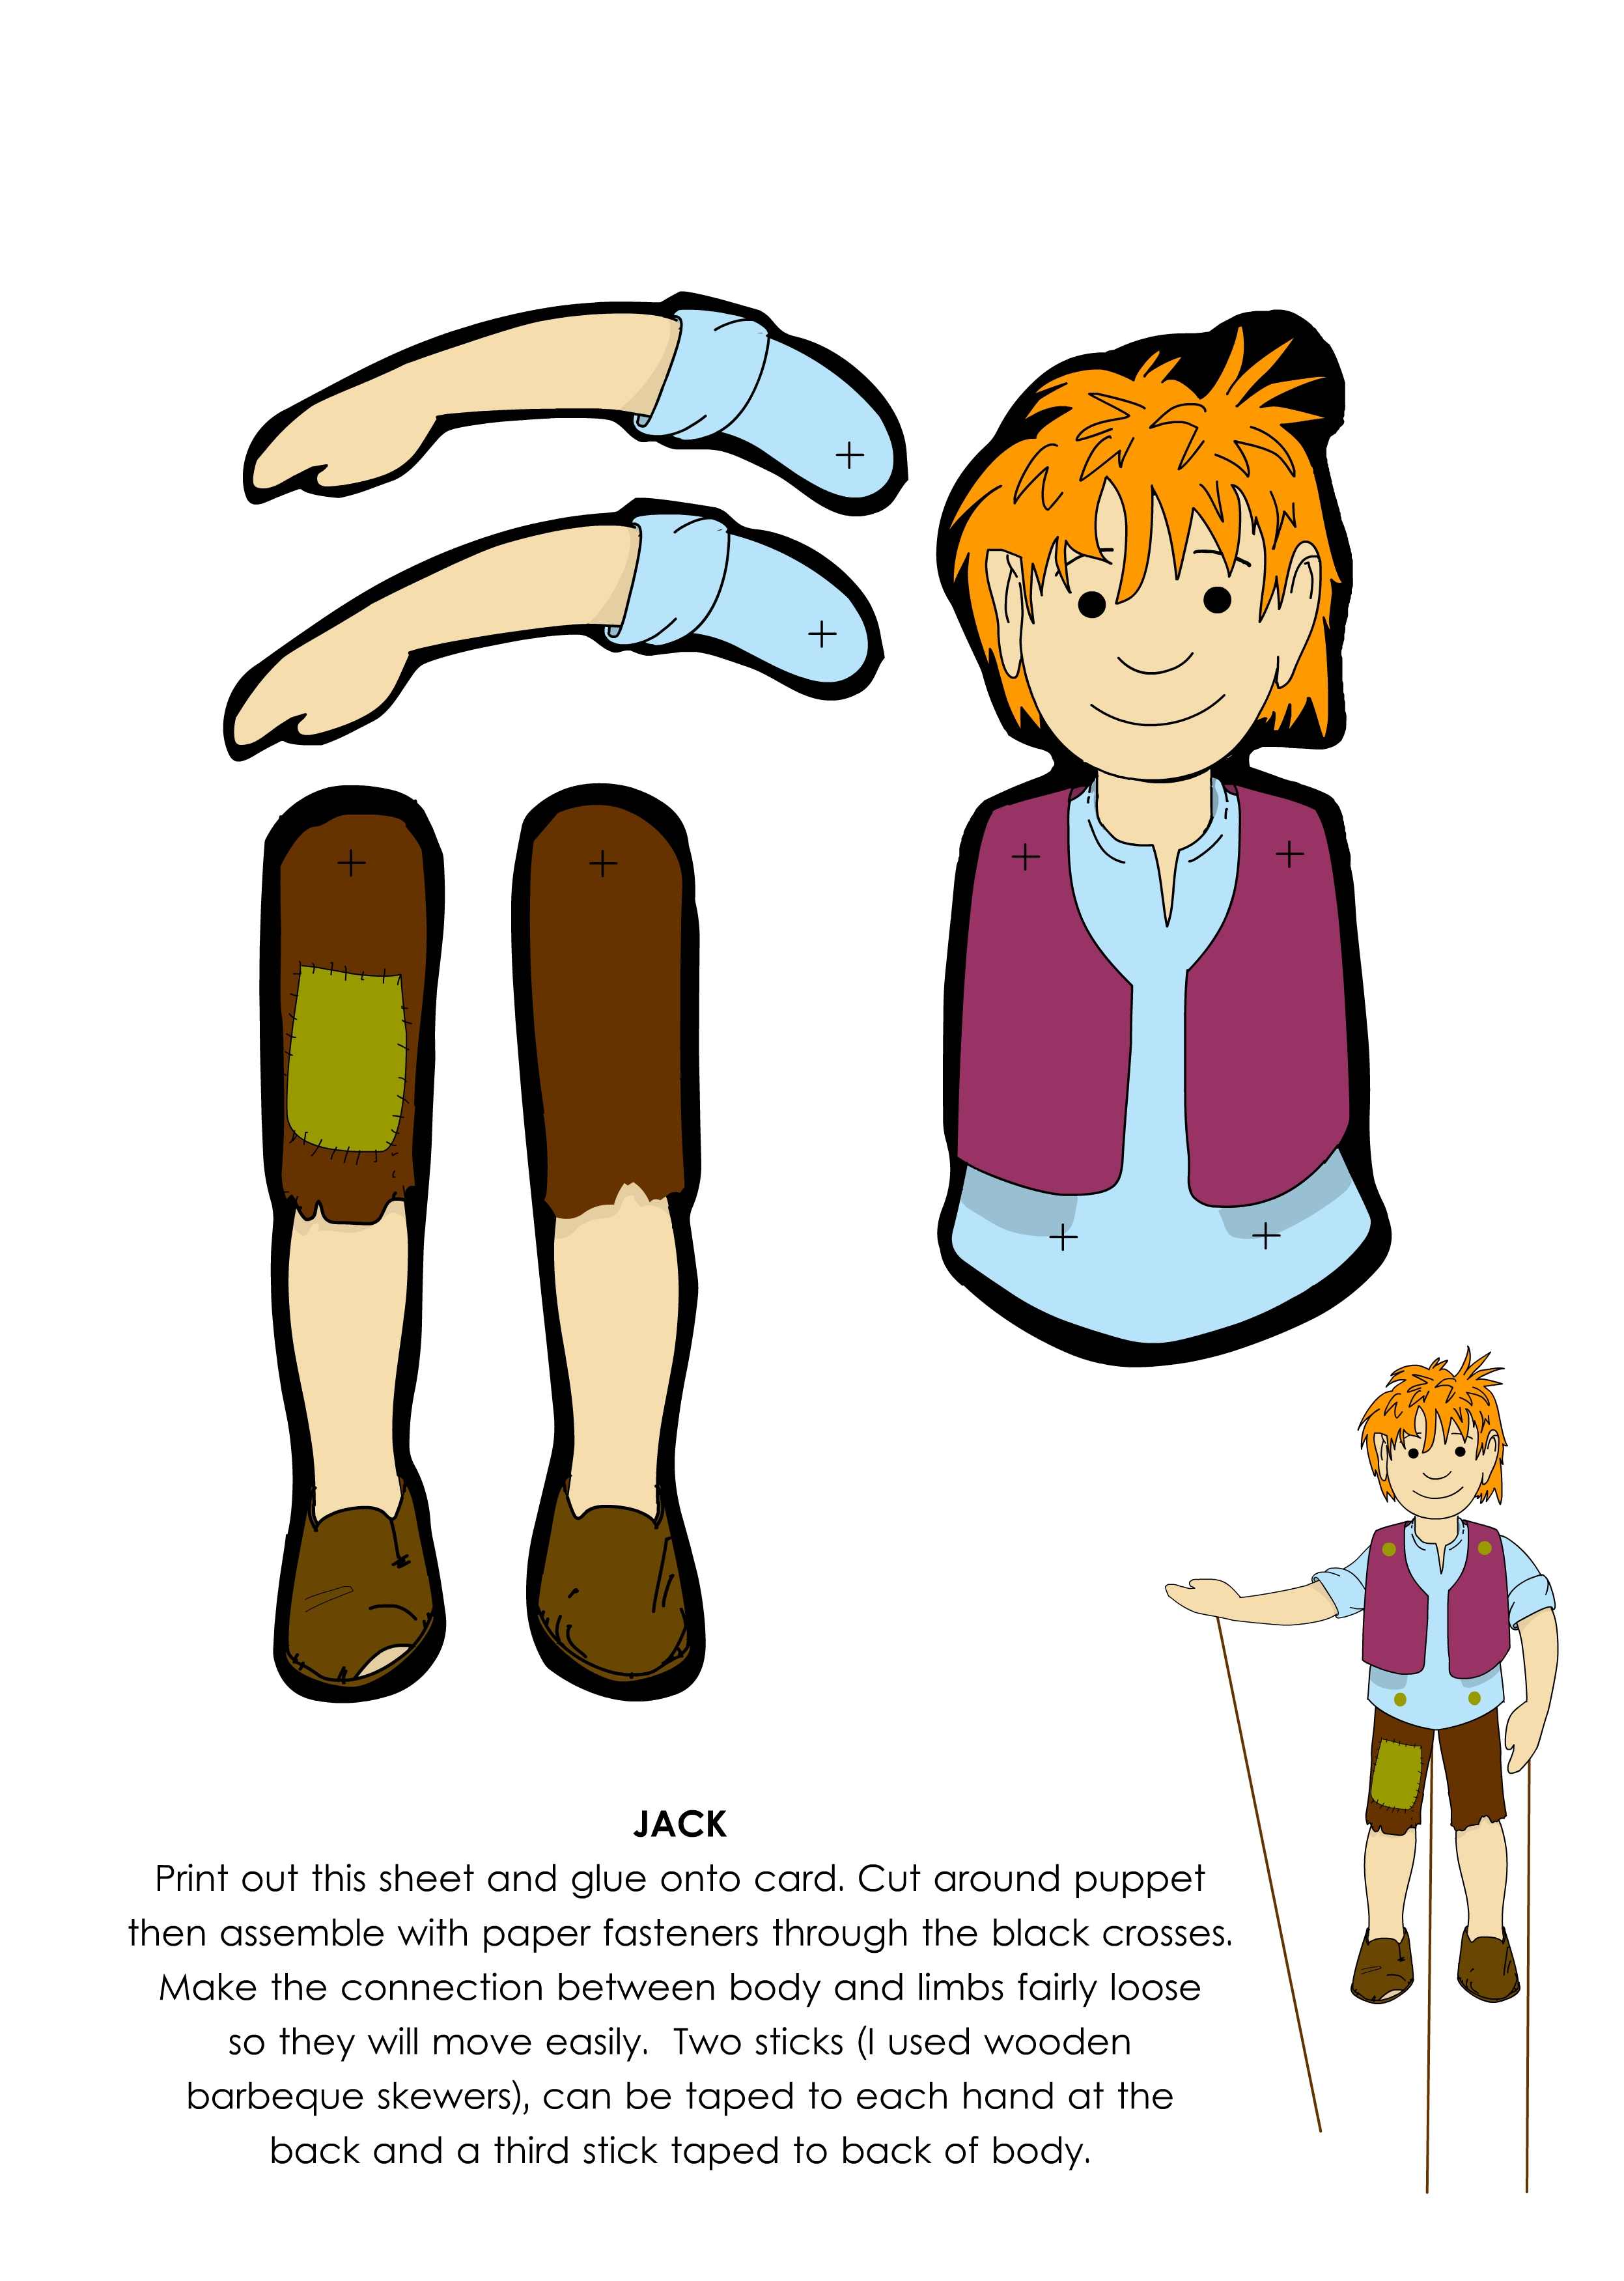 2494x3503 Jack Puppet From Jack And The Beanstalk From Littleredlanguages.co